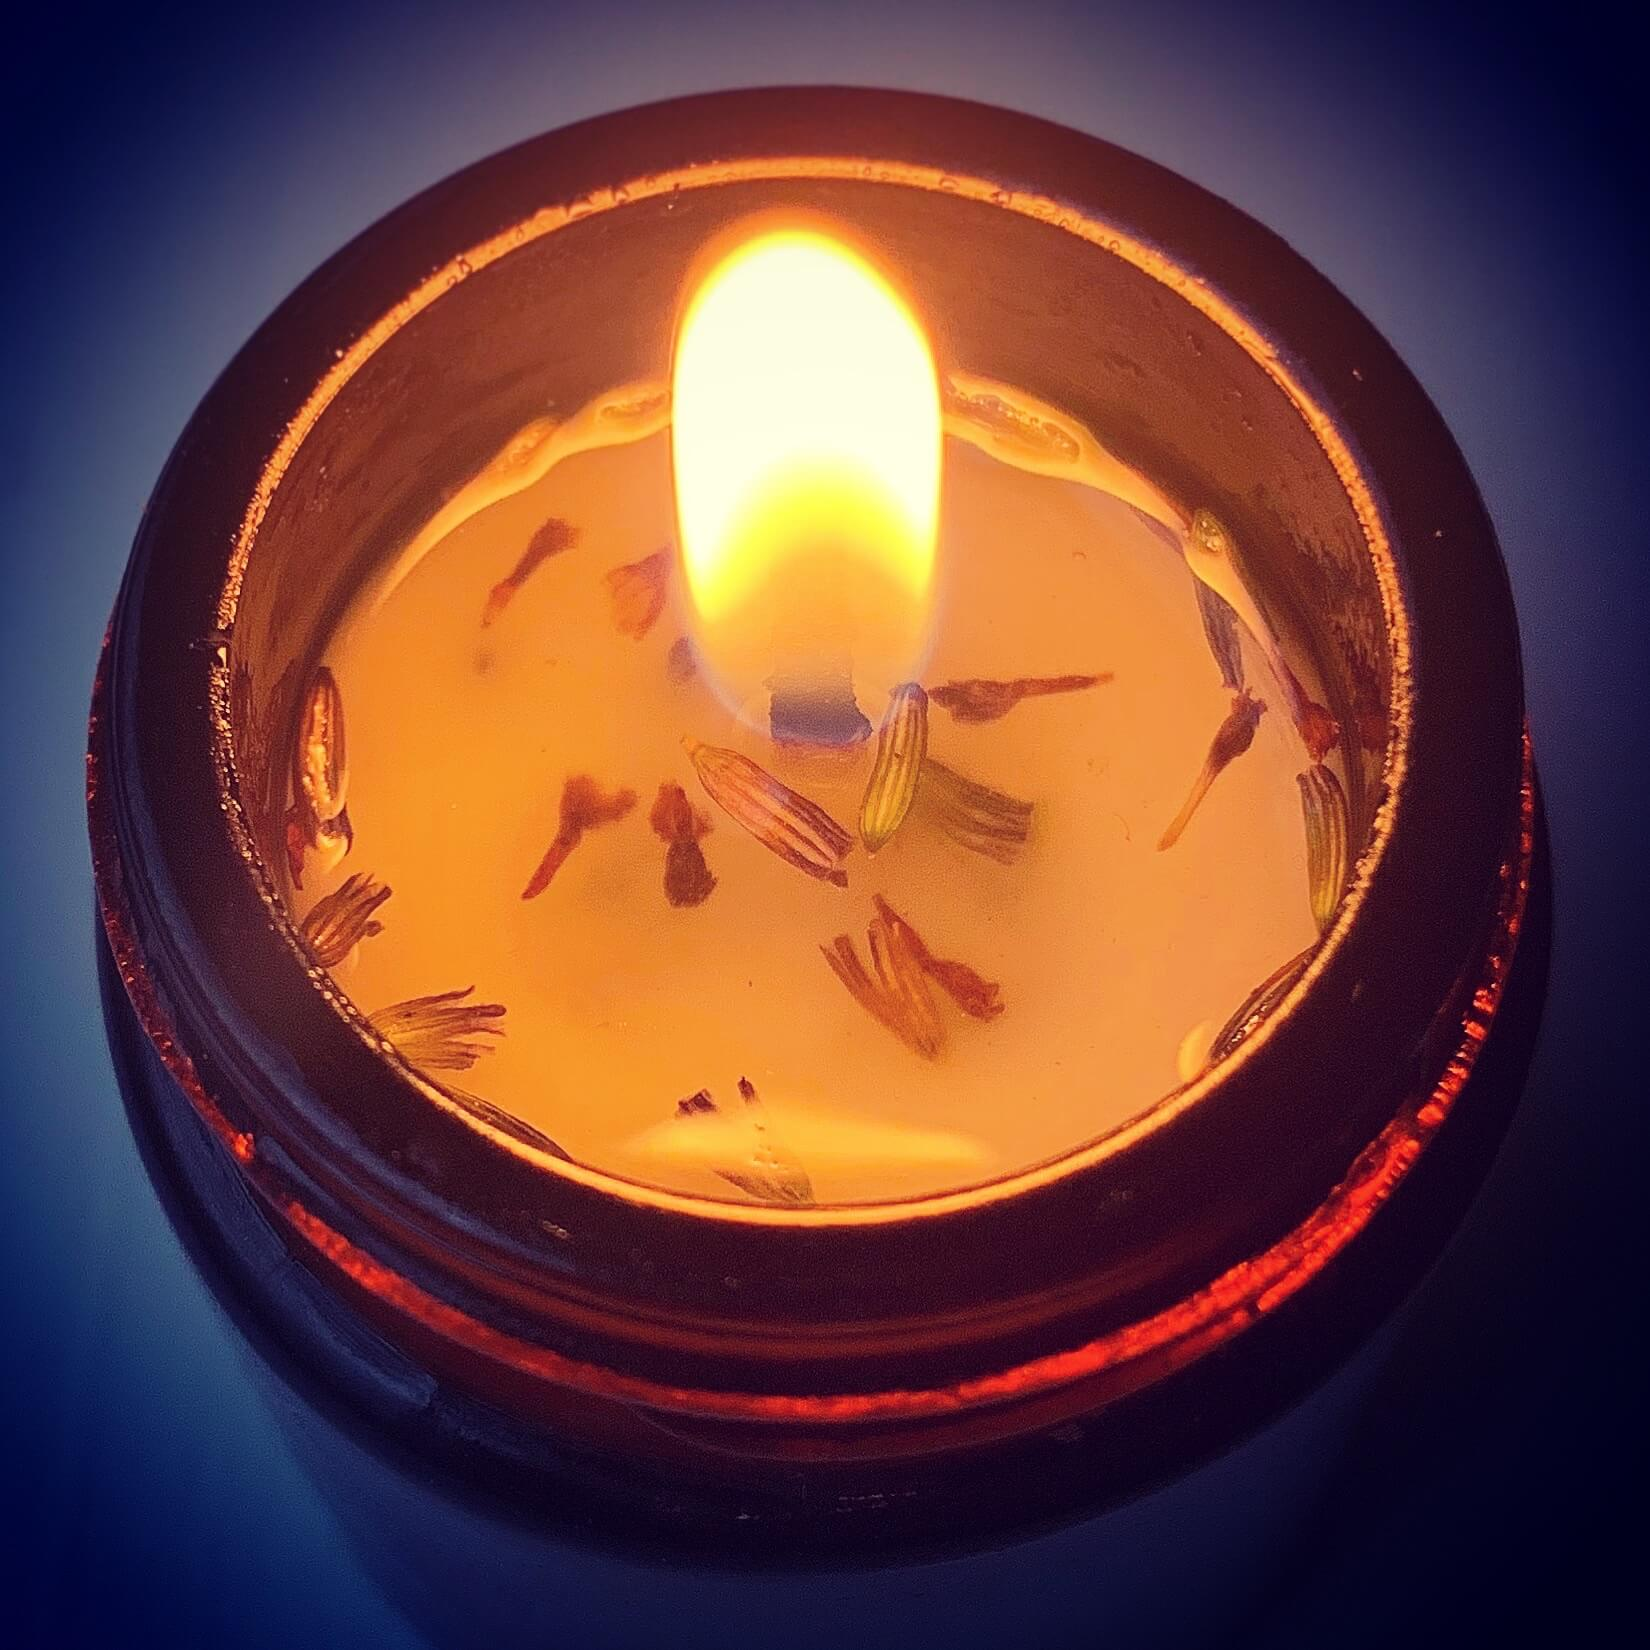 Candle Lit | The Mustcard